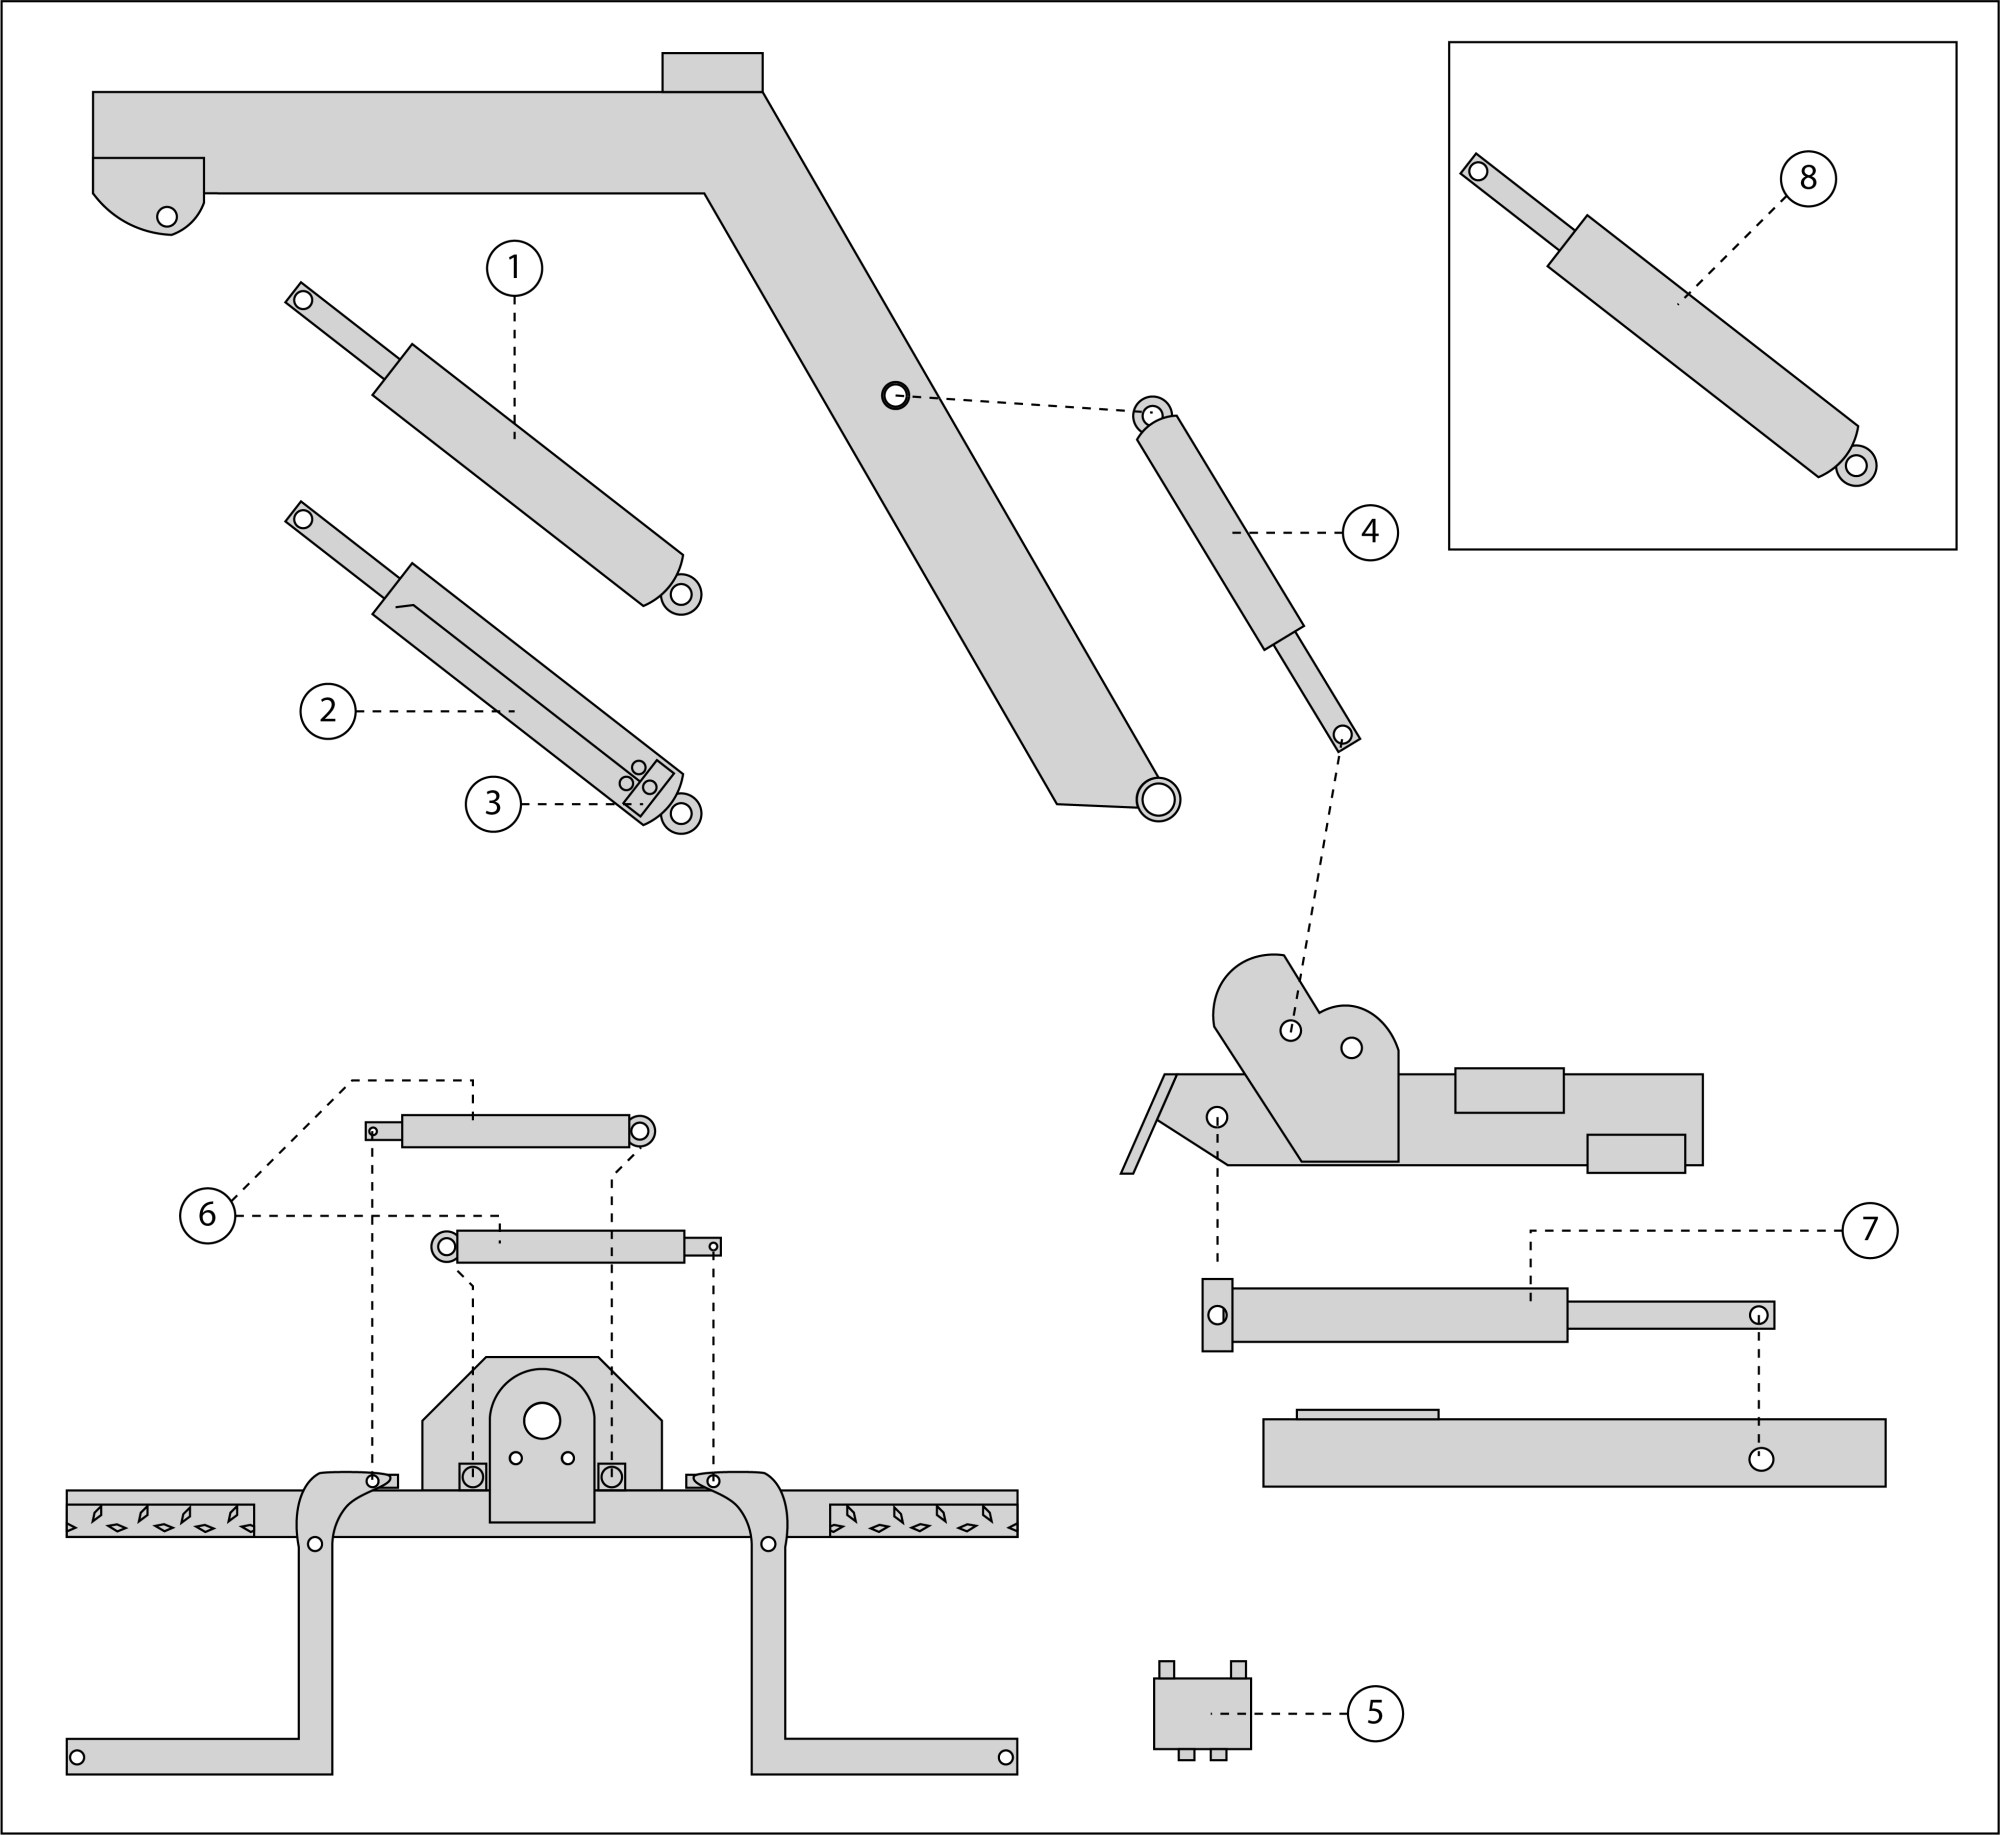 hight resolution of  hydraulic parts diagram 1 passenger side up down cylinder 2 driver side up down cylinder 3 sun valve 4 fold cylinder 5 jaws lock valve 6